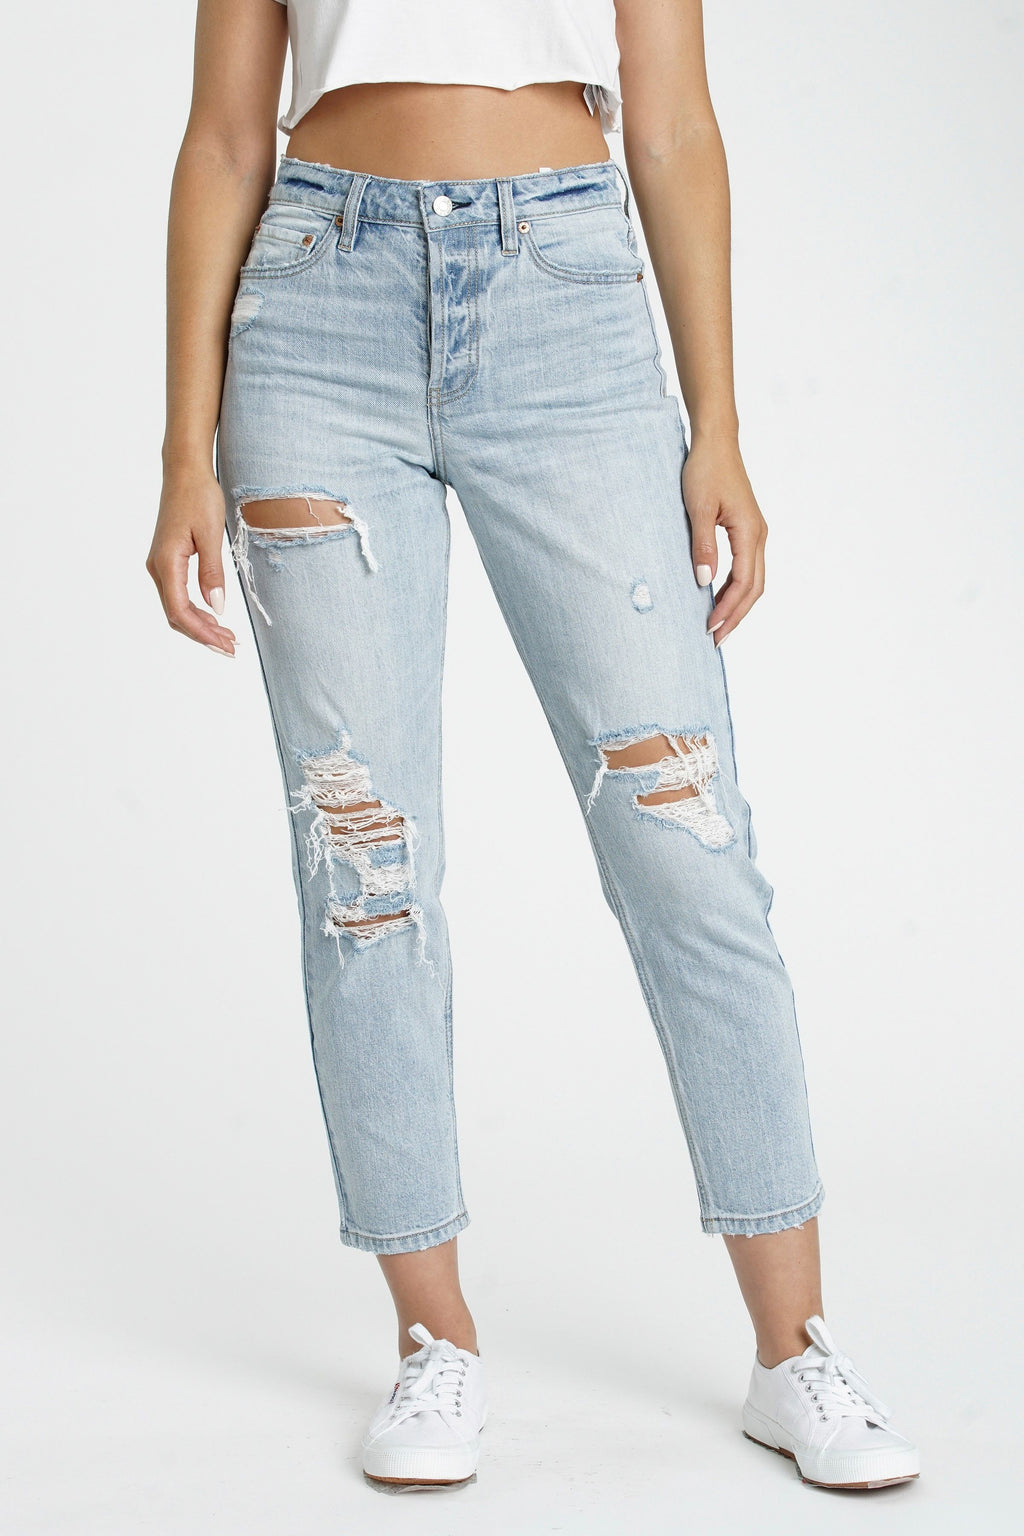 The Original High Rise Mom Jean